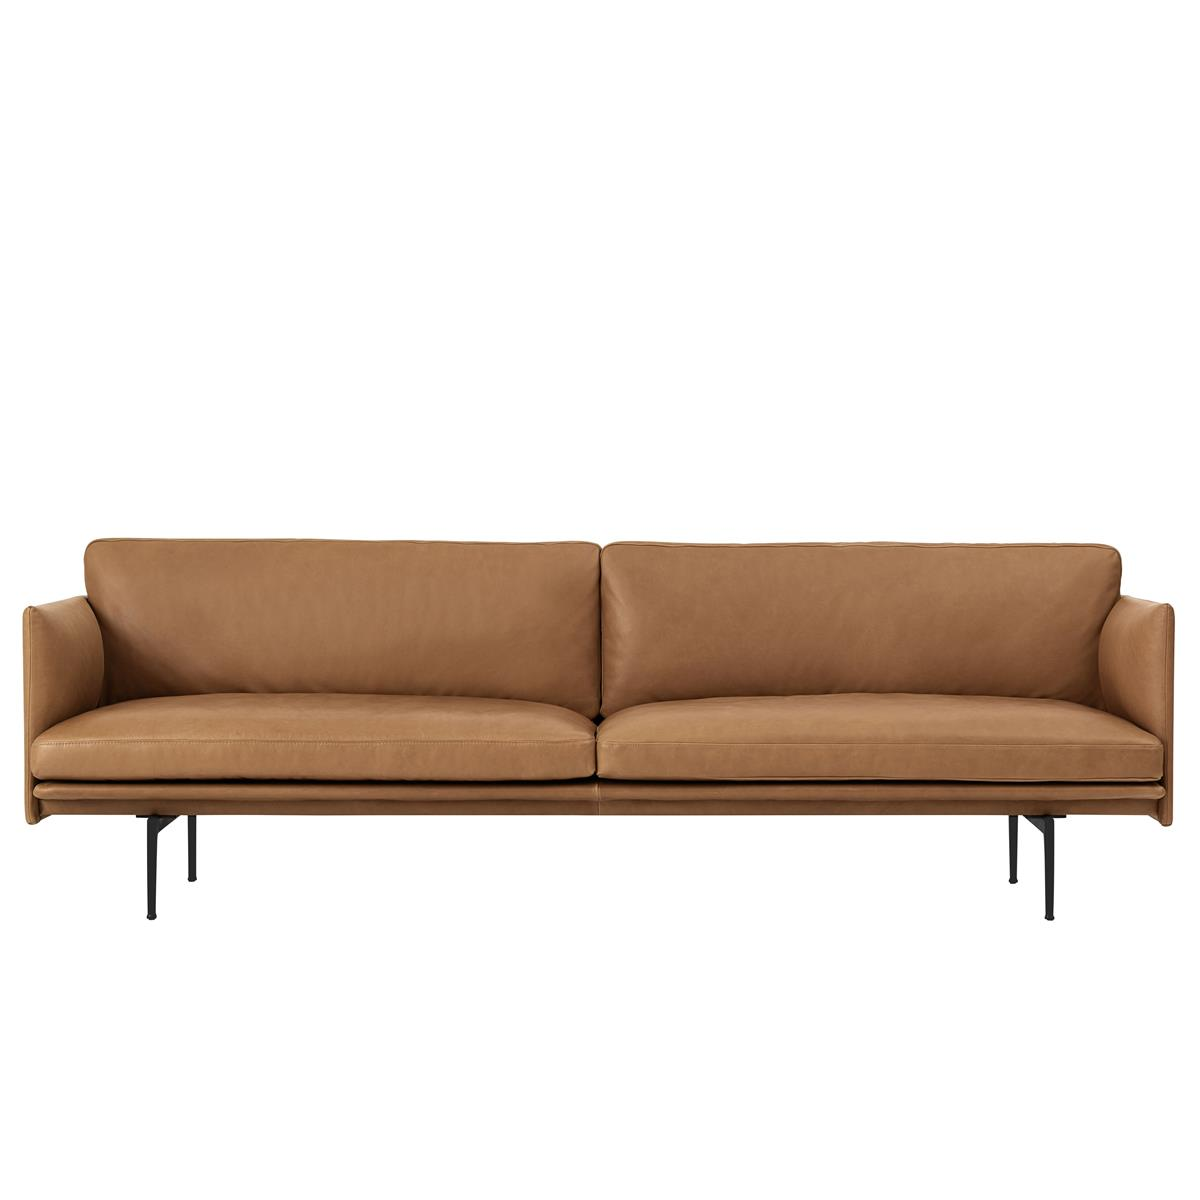 Outline Sofa 3 Seater - Cognac Silk Leather & Black